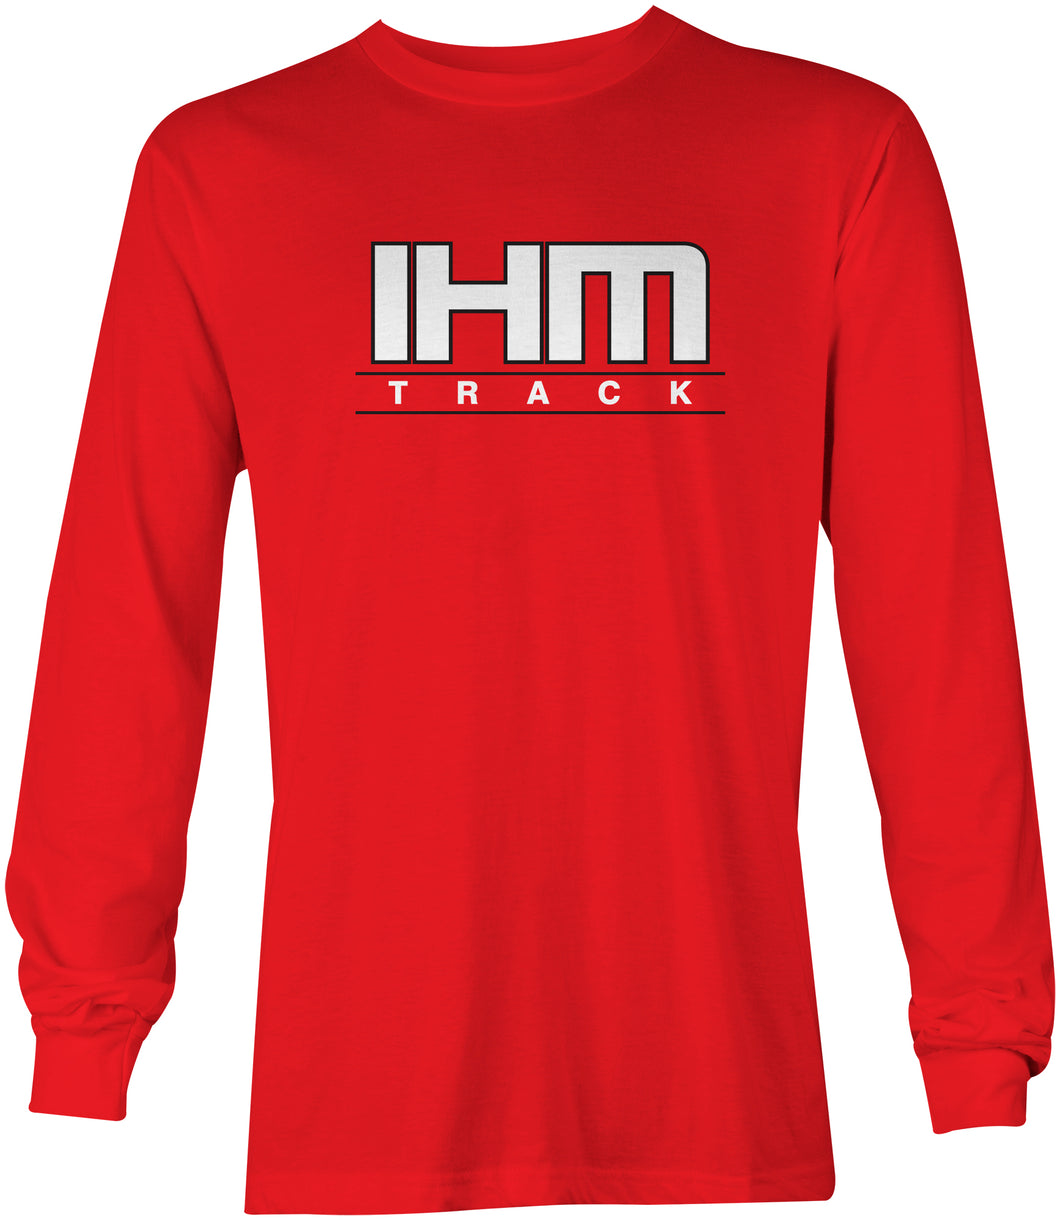 Red Track Long Sleeve T-Shirt